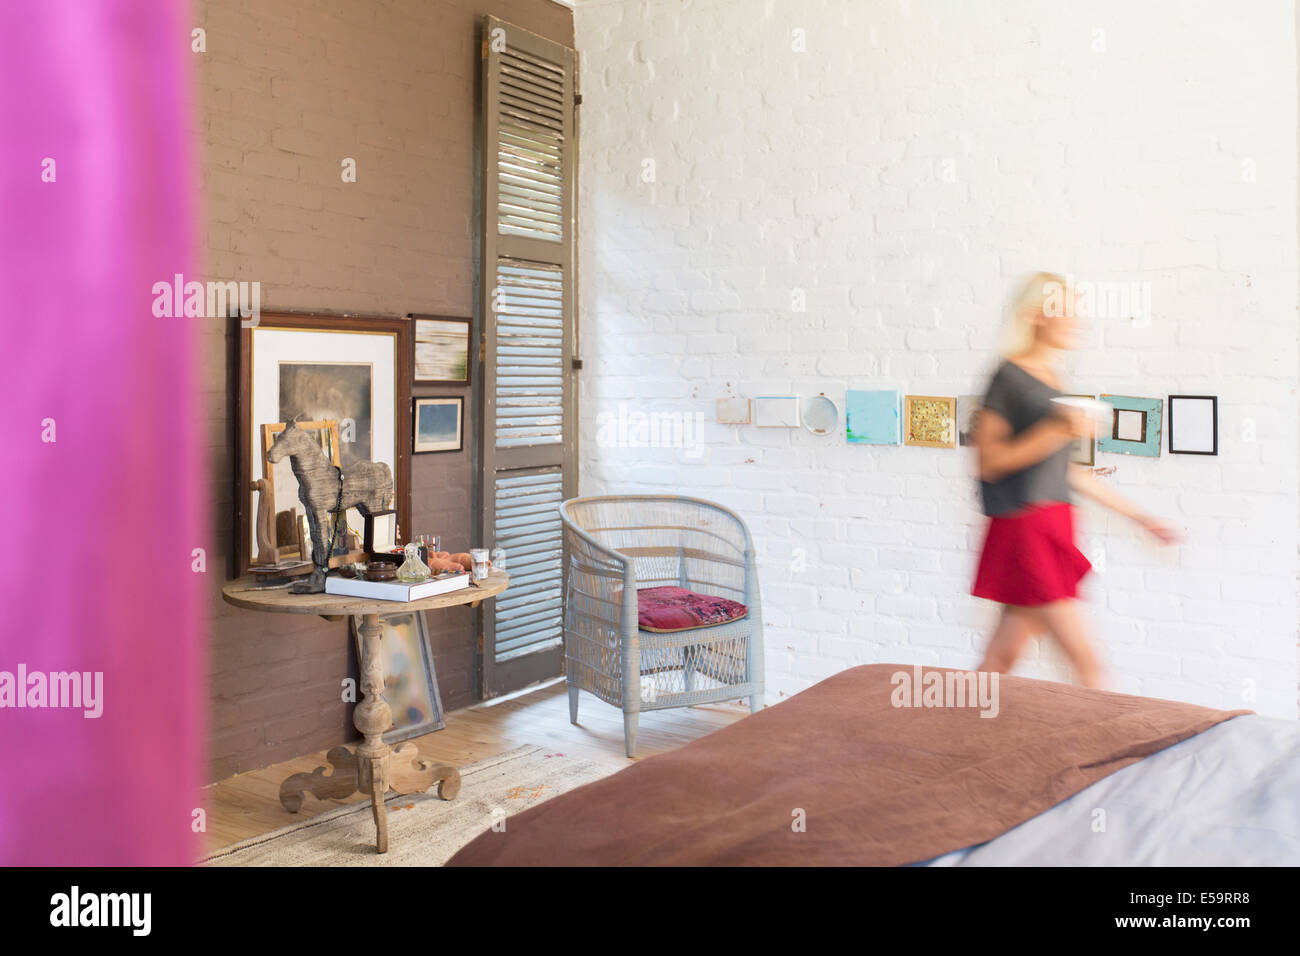 Blurred view of woman walking in bedroom - Stock Image